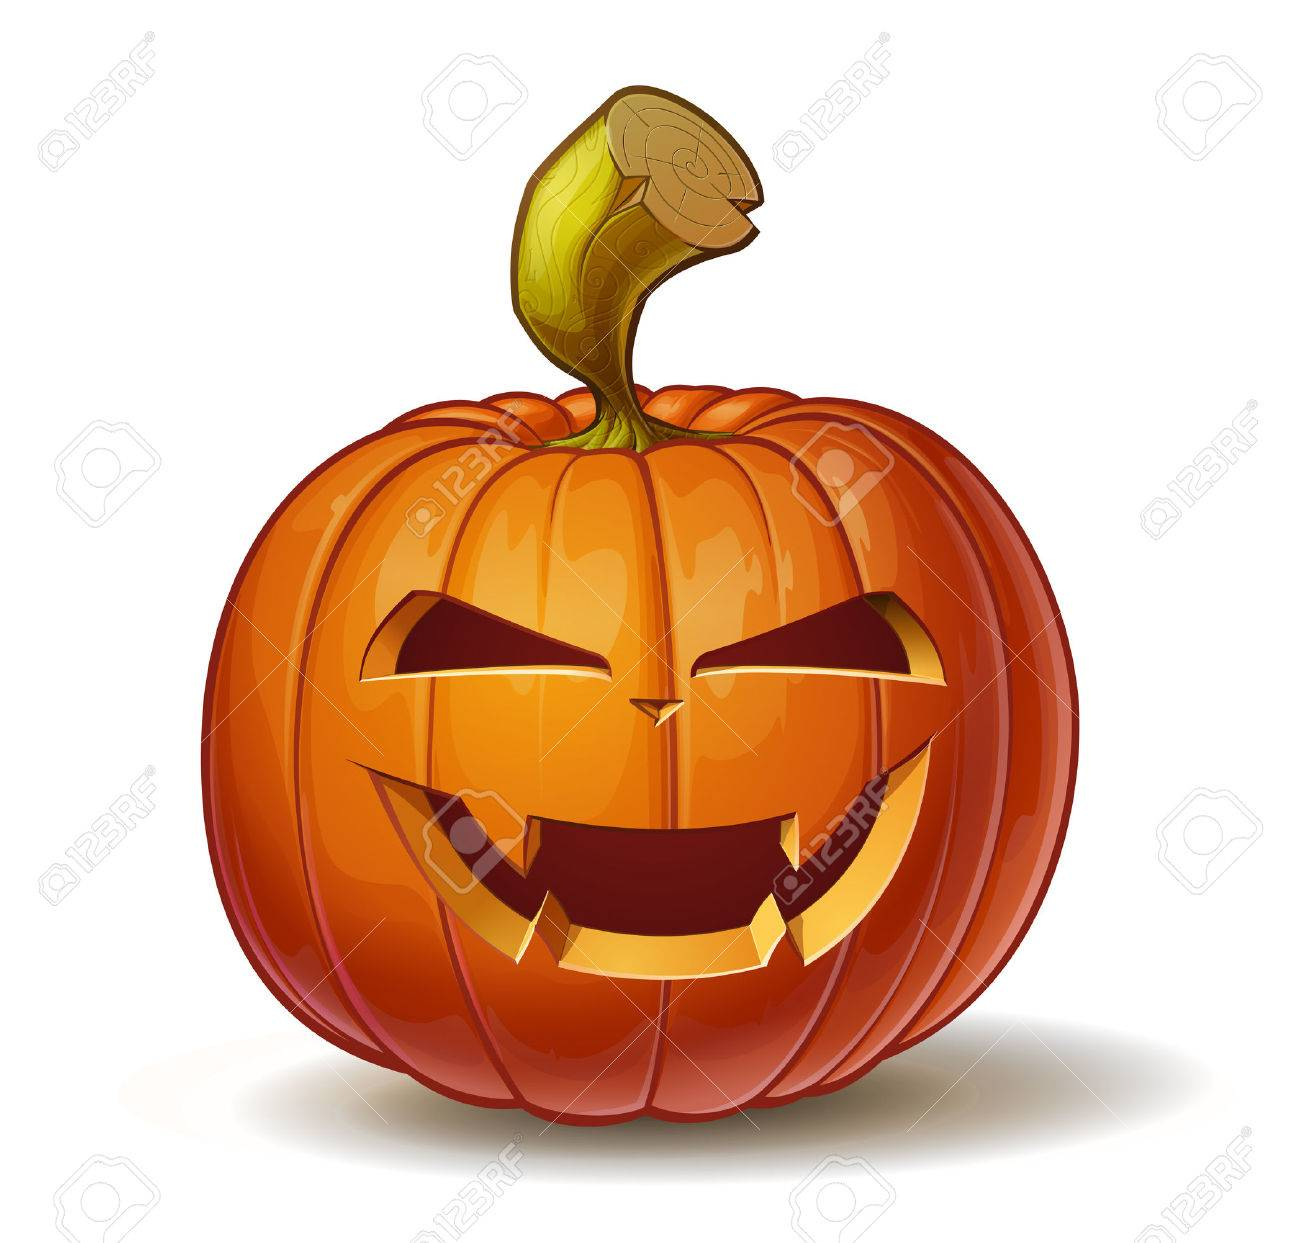 9,314 Halloween Mask Stock Illustrations, Cliparts And Royalty ...